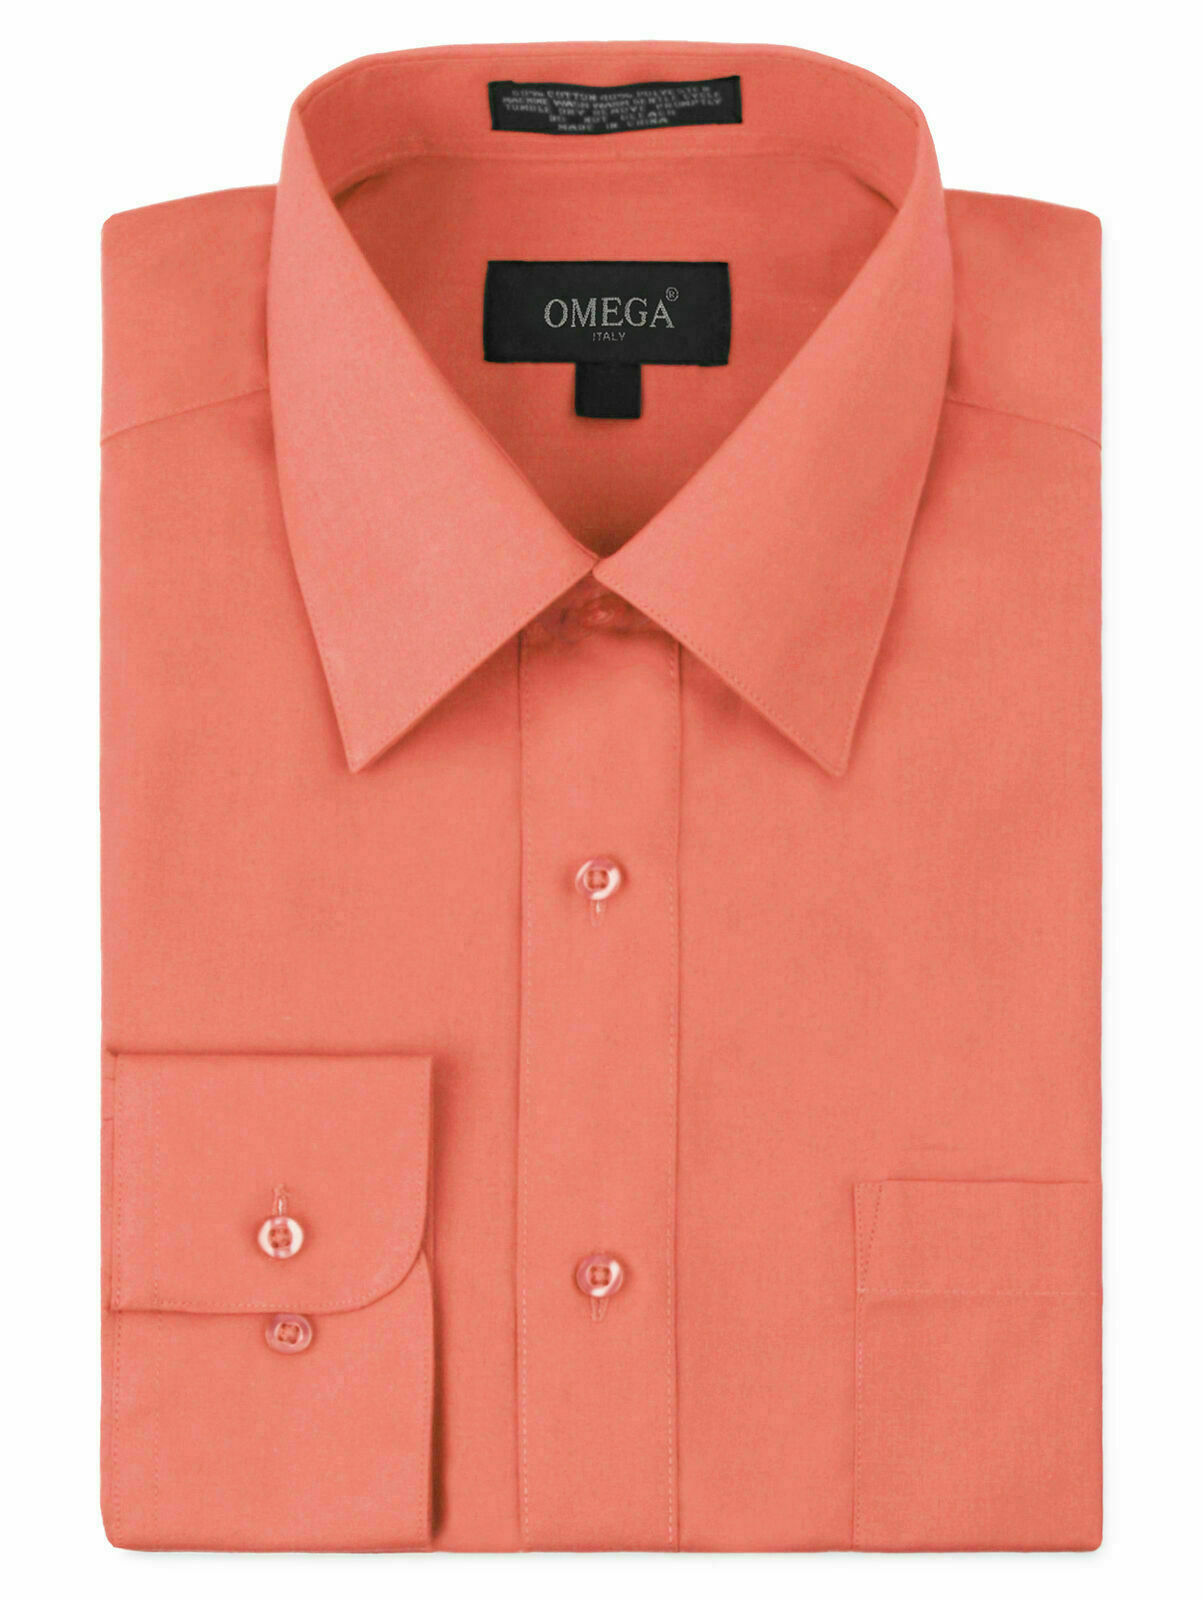 Omega Italy Men's Long Sleeve Solid Regular Fit Coral Dress Shirt - 4XL